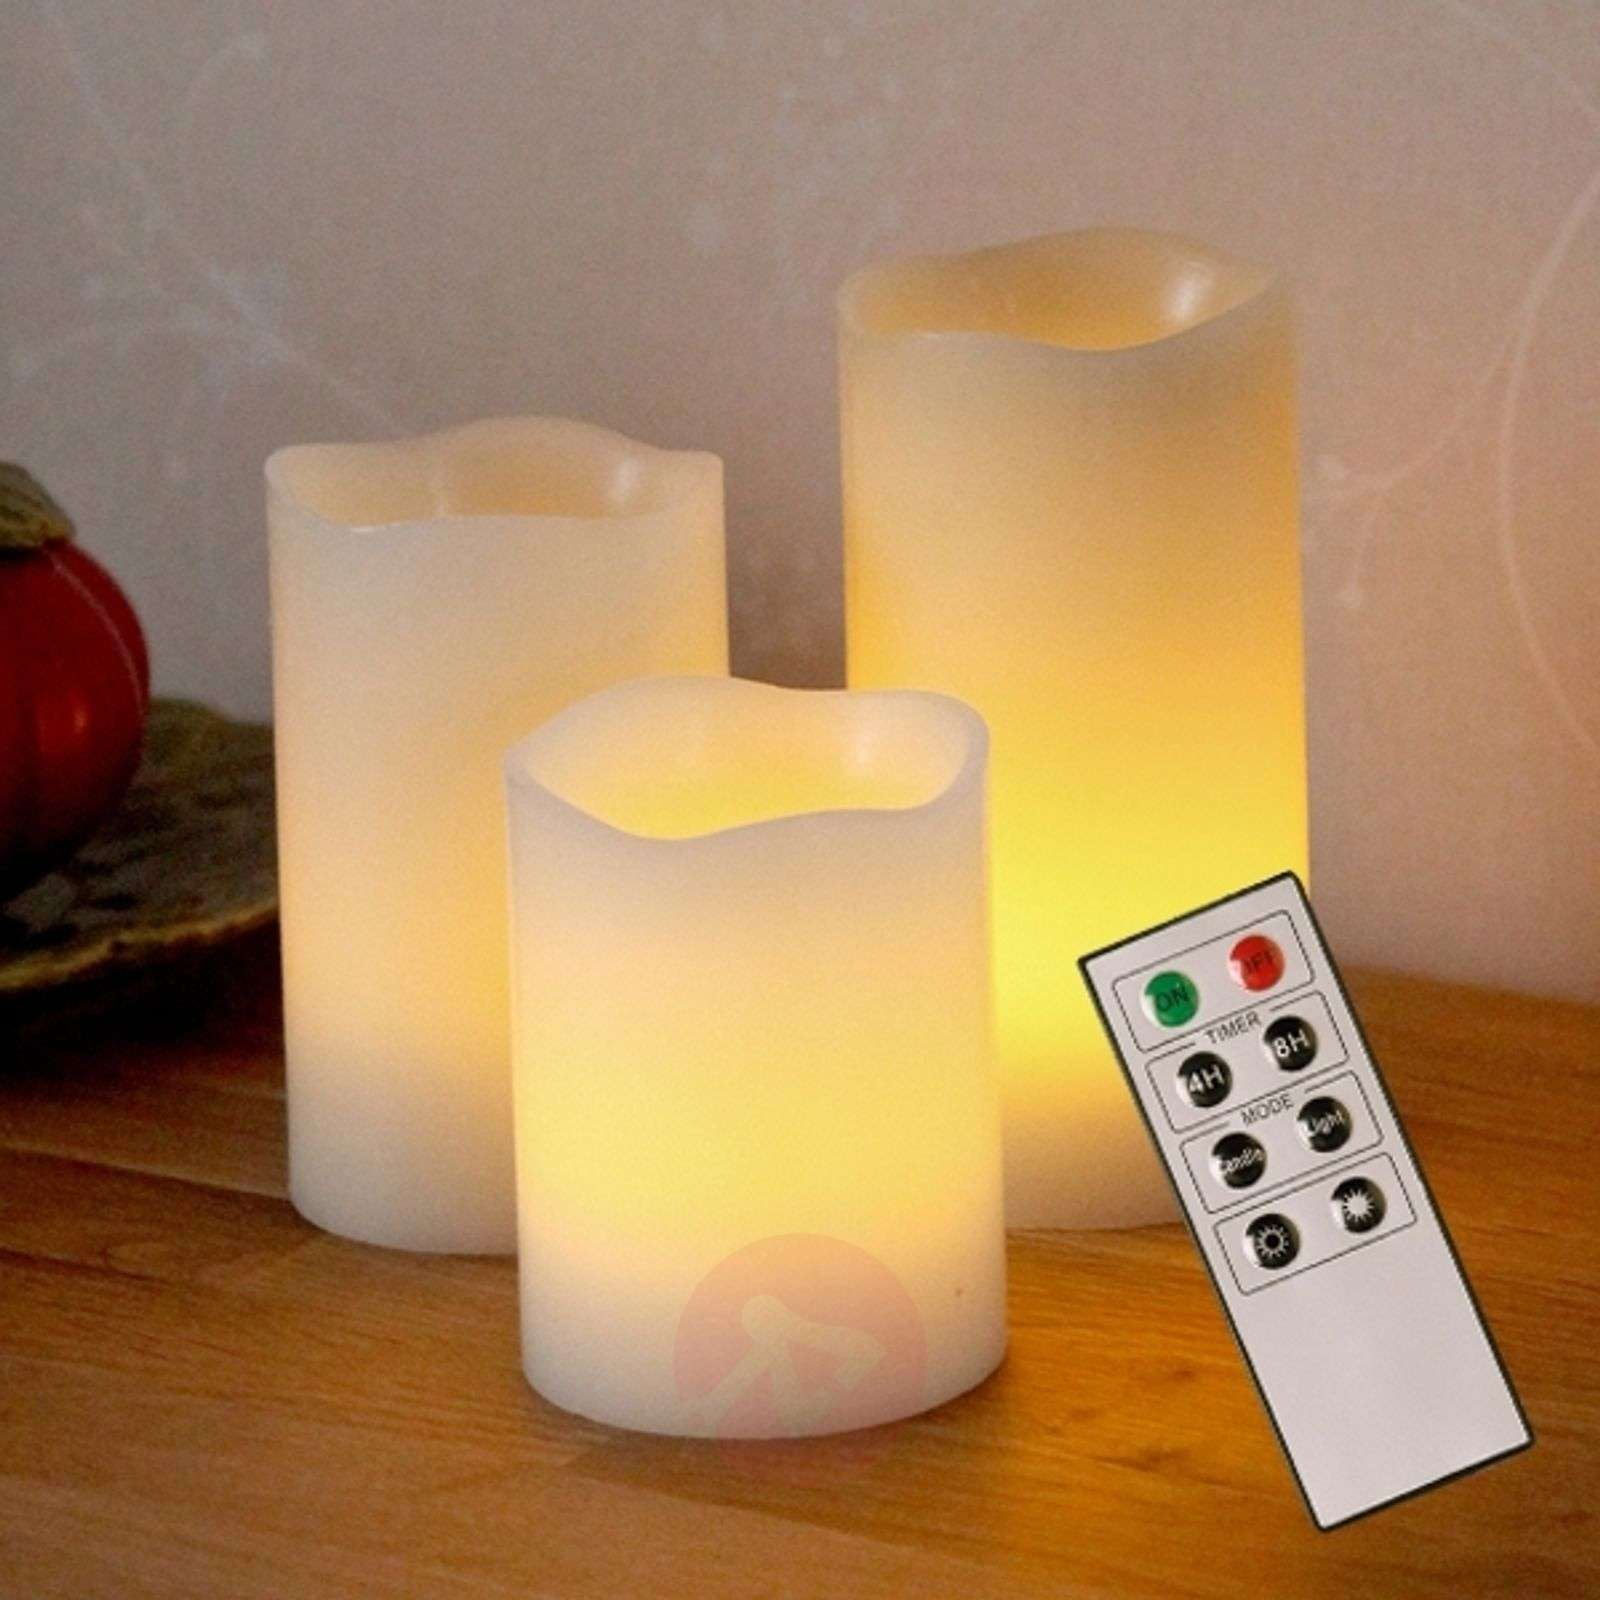 Decorative candele LED Wax di cera-1522391-01